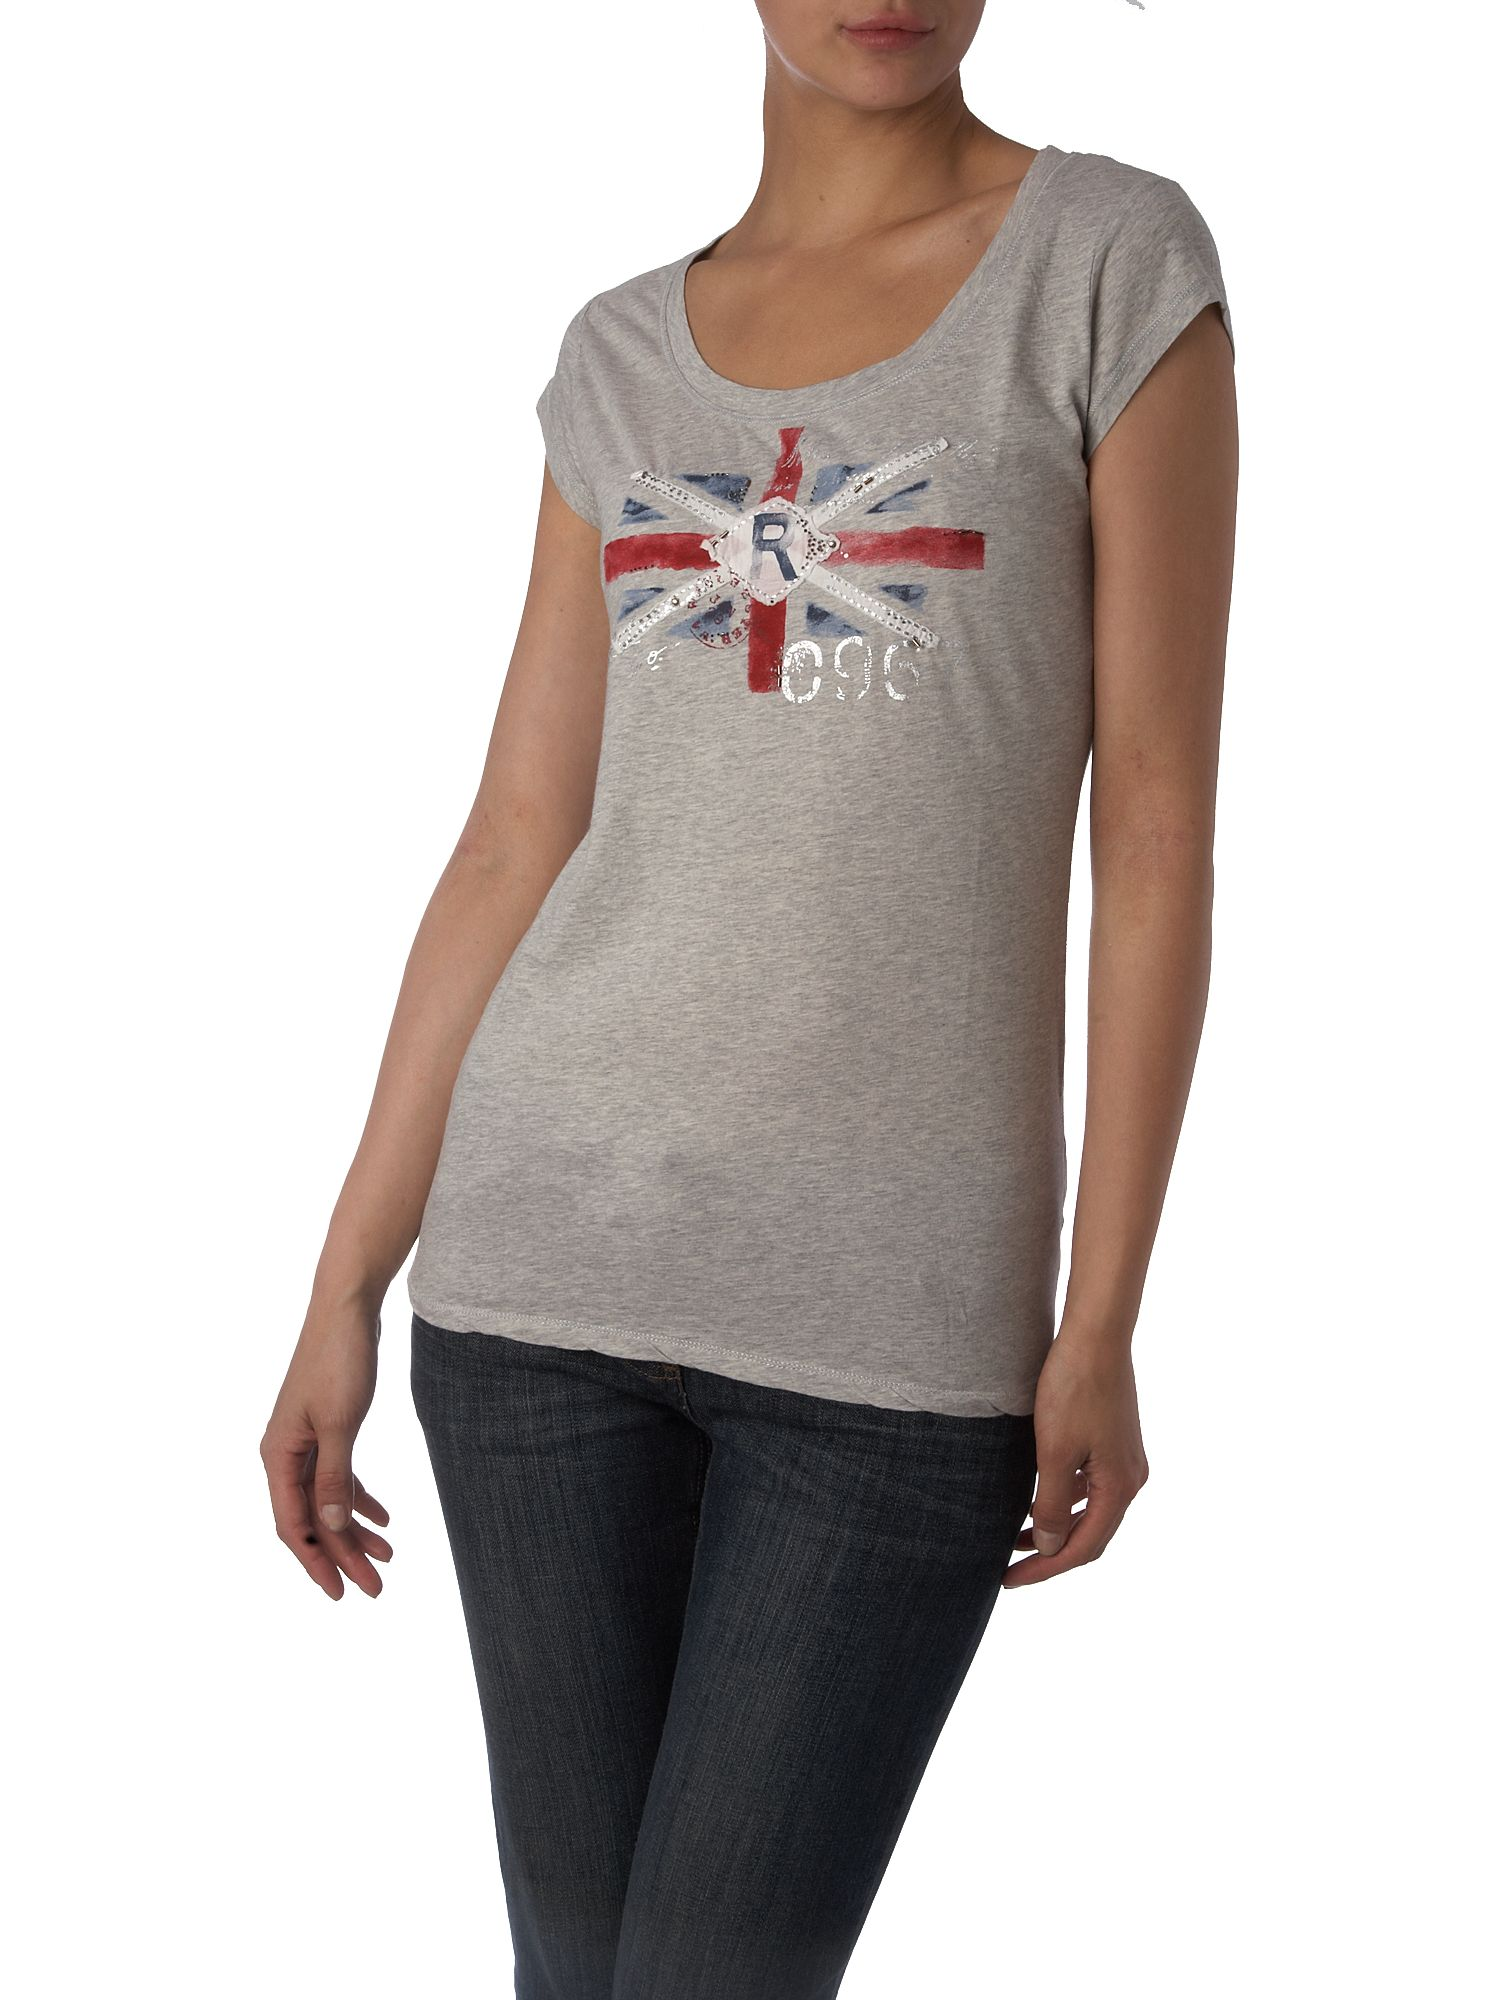 Polo Jeans Round neck tee with flag print Grey product image